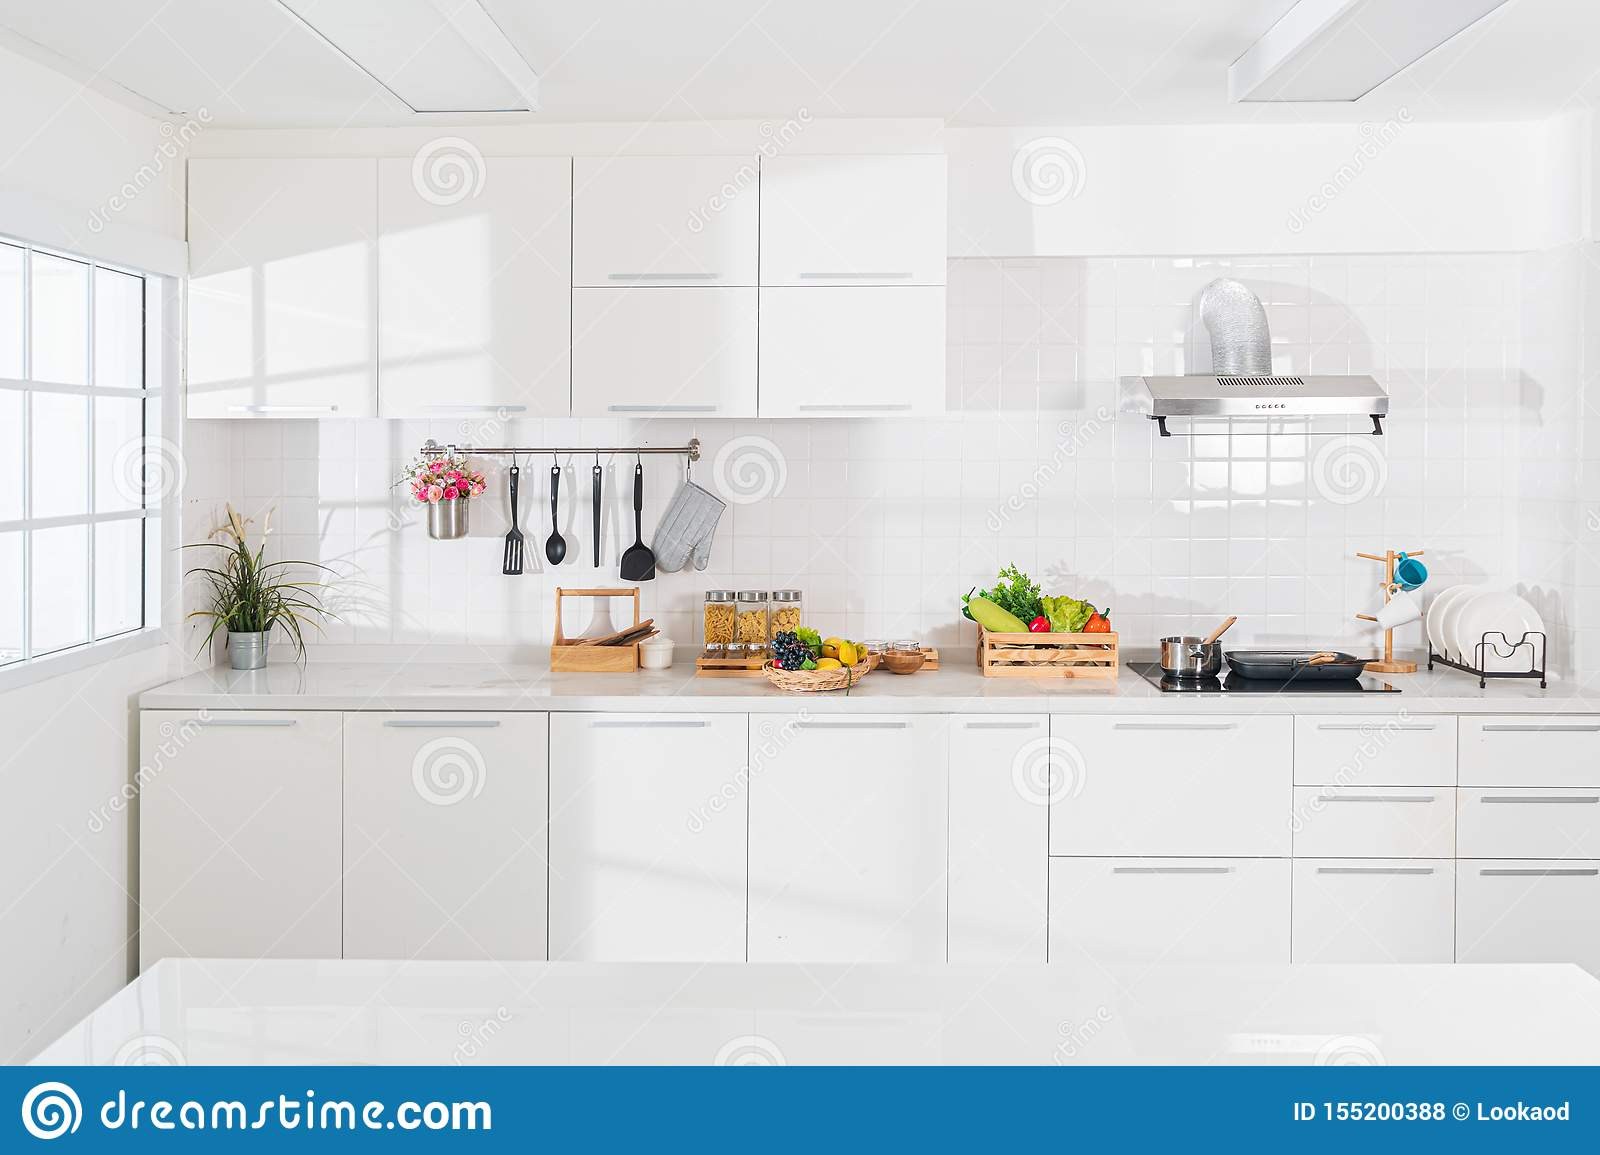 2 877 Dream Kitchen Photos Free Royalty Stock From Dreamstime